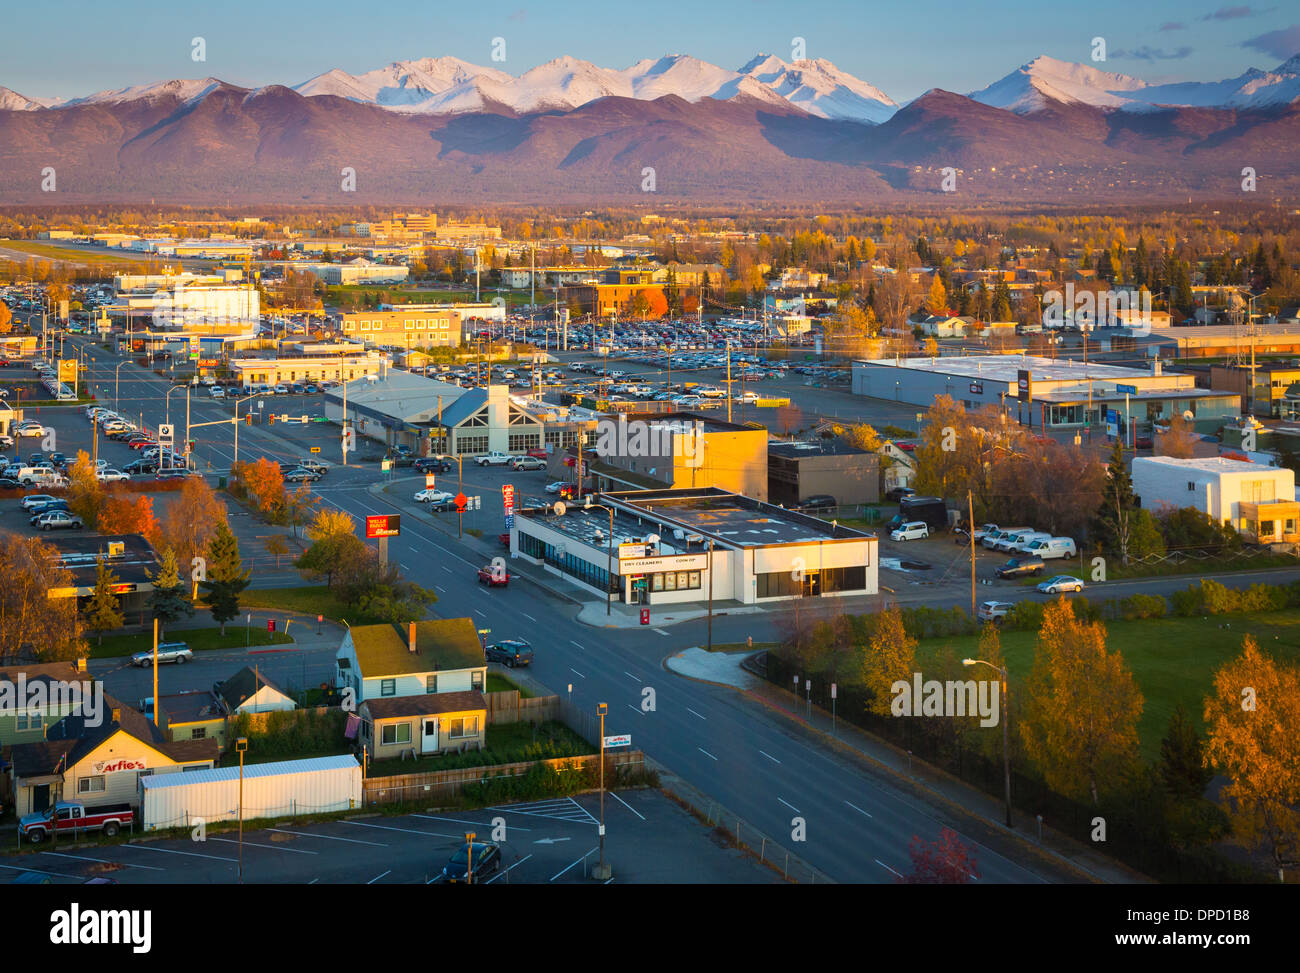 Downtown Anchorage, en Alaska, Imagen De Stock